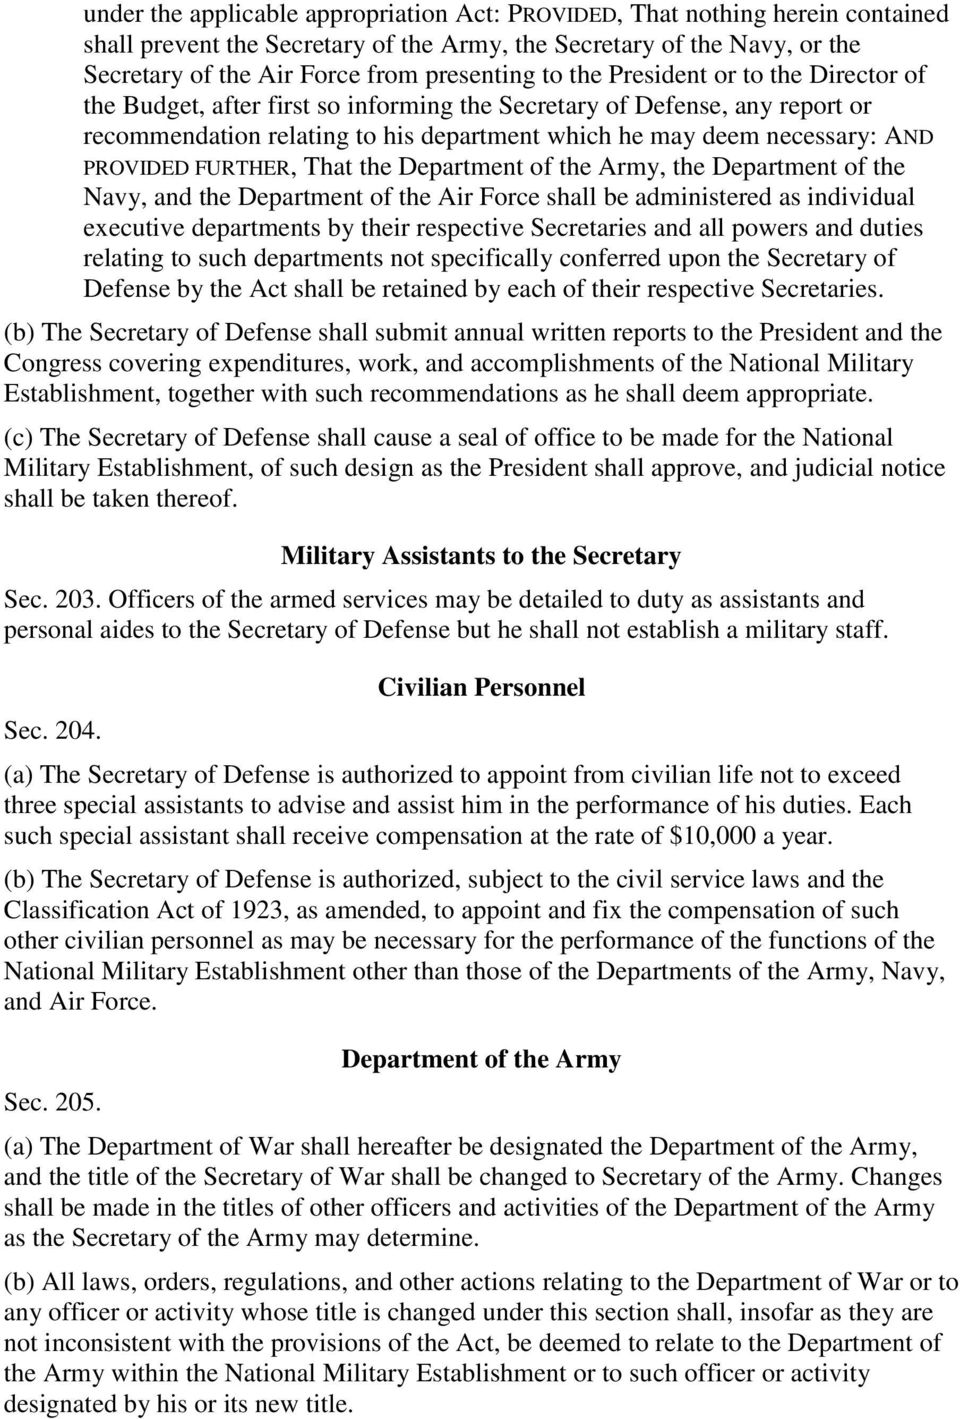 FURTHER, That the Department of the Army, the Department of the Navy, and the Department of the Air Force shall be administered as individual executive departments by their respective Secretaries and